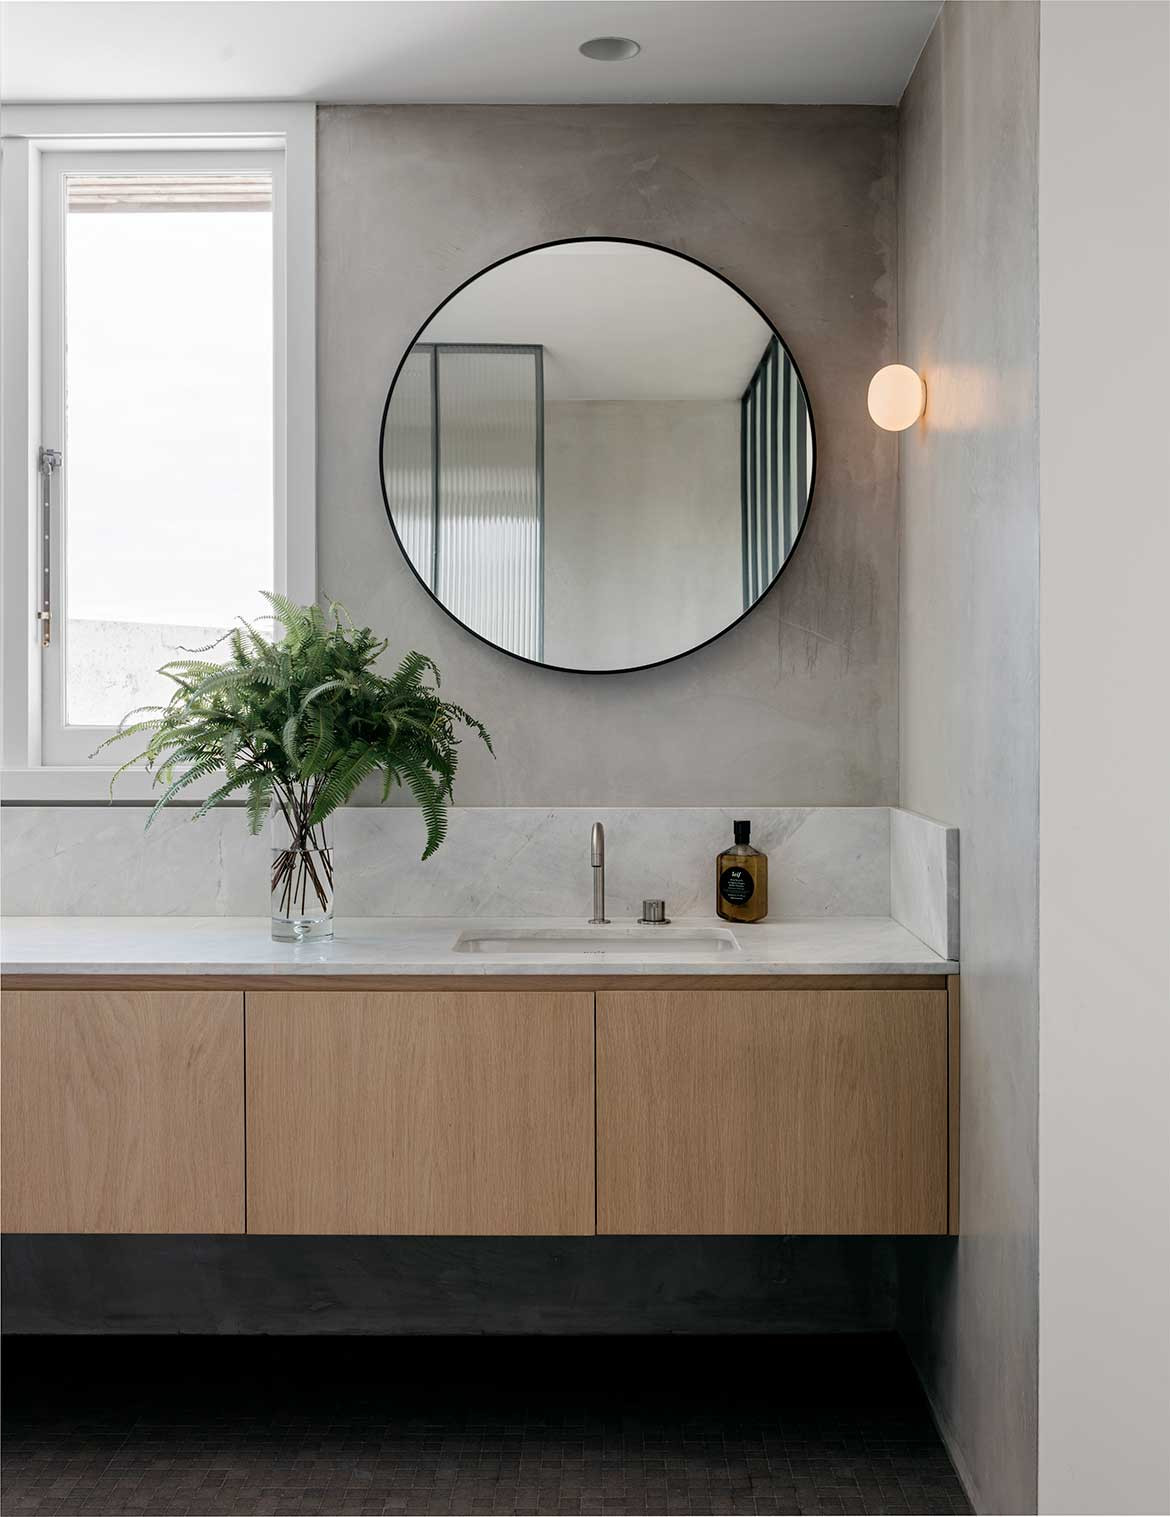 SJB Jonathan Richards Darlinghurst Residence cc Felix Forest bathroom